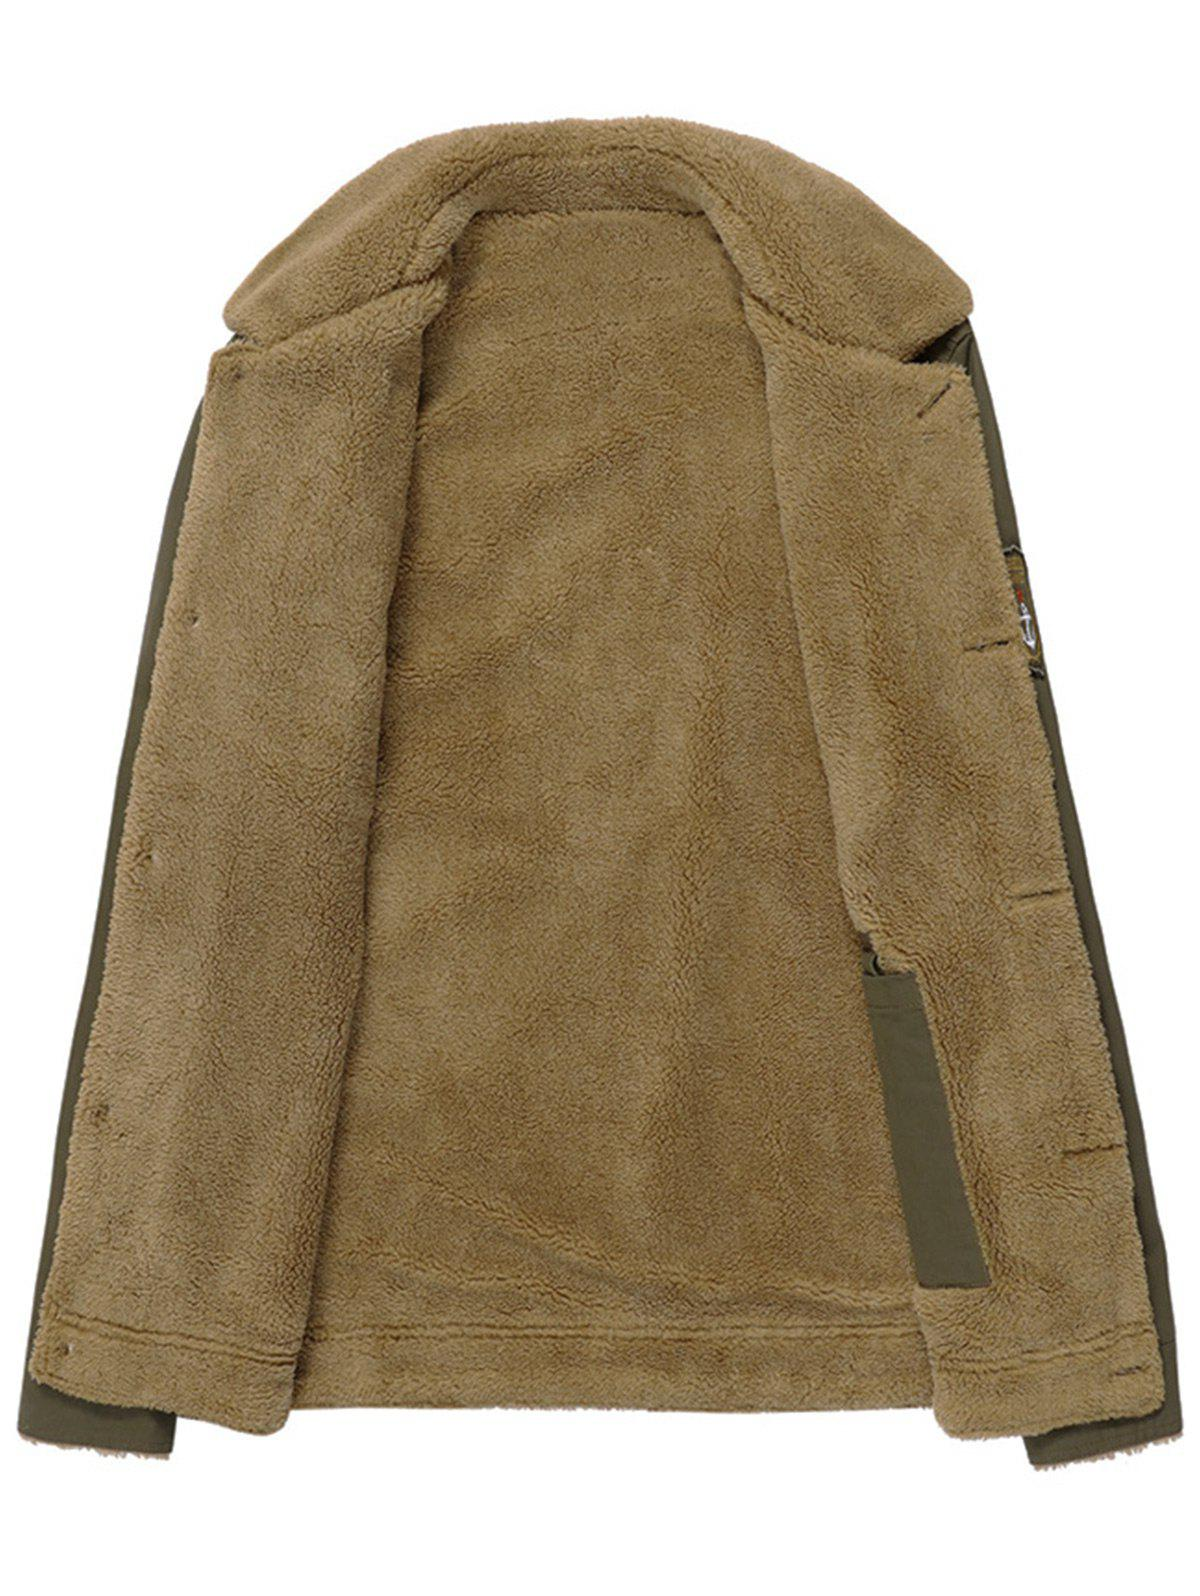 Button Up Patched Faux Shearling Jacket - KHAKI L